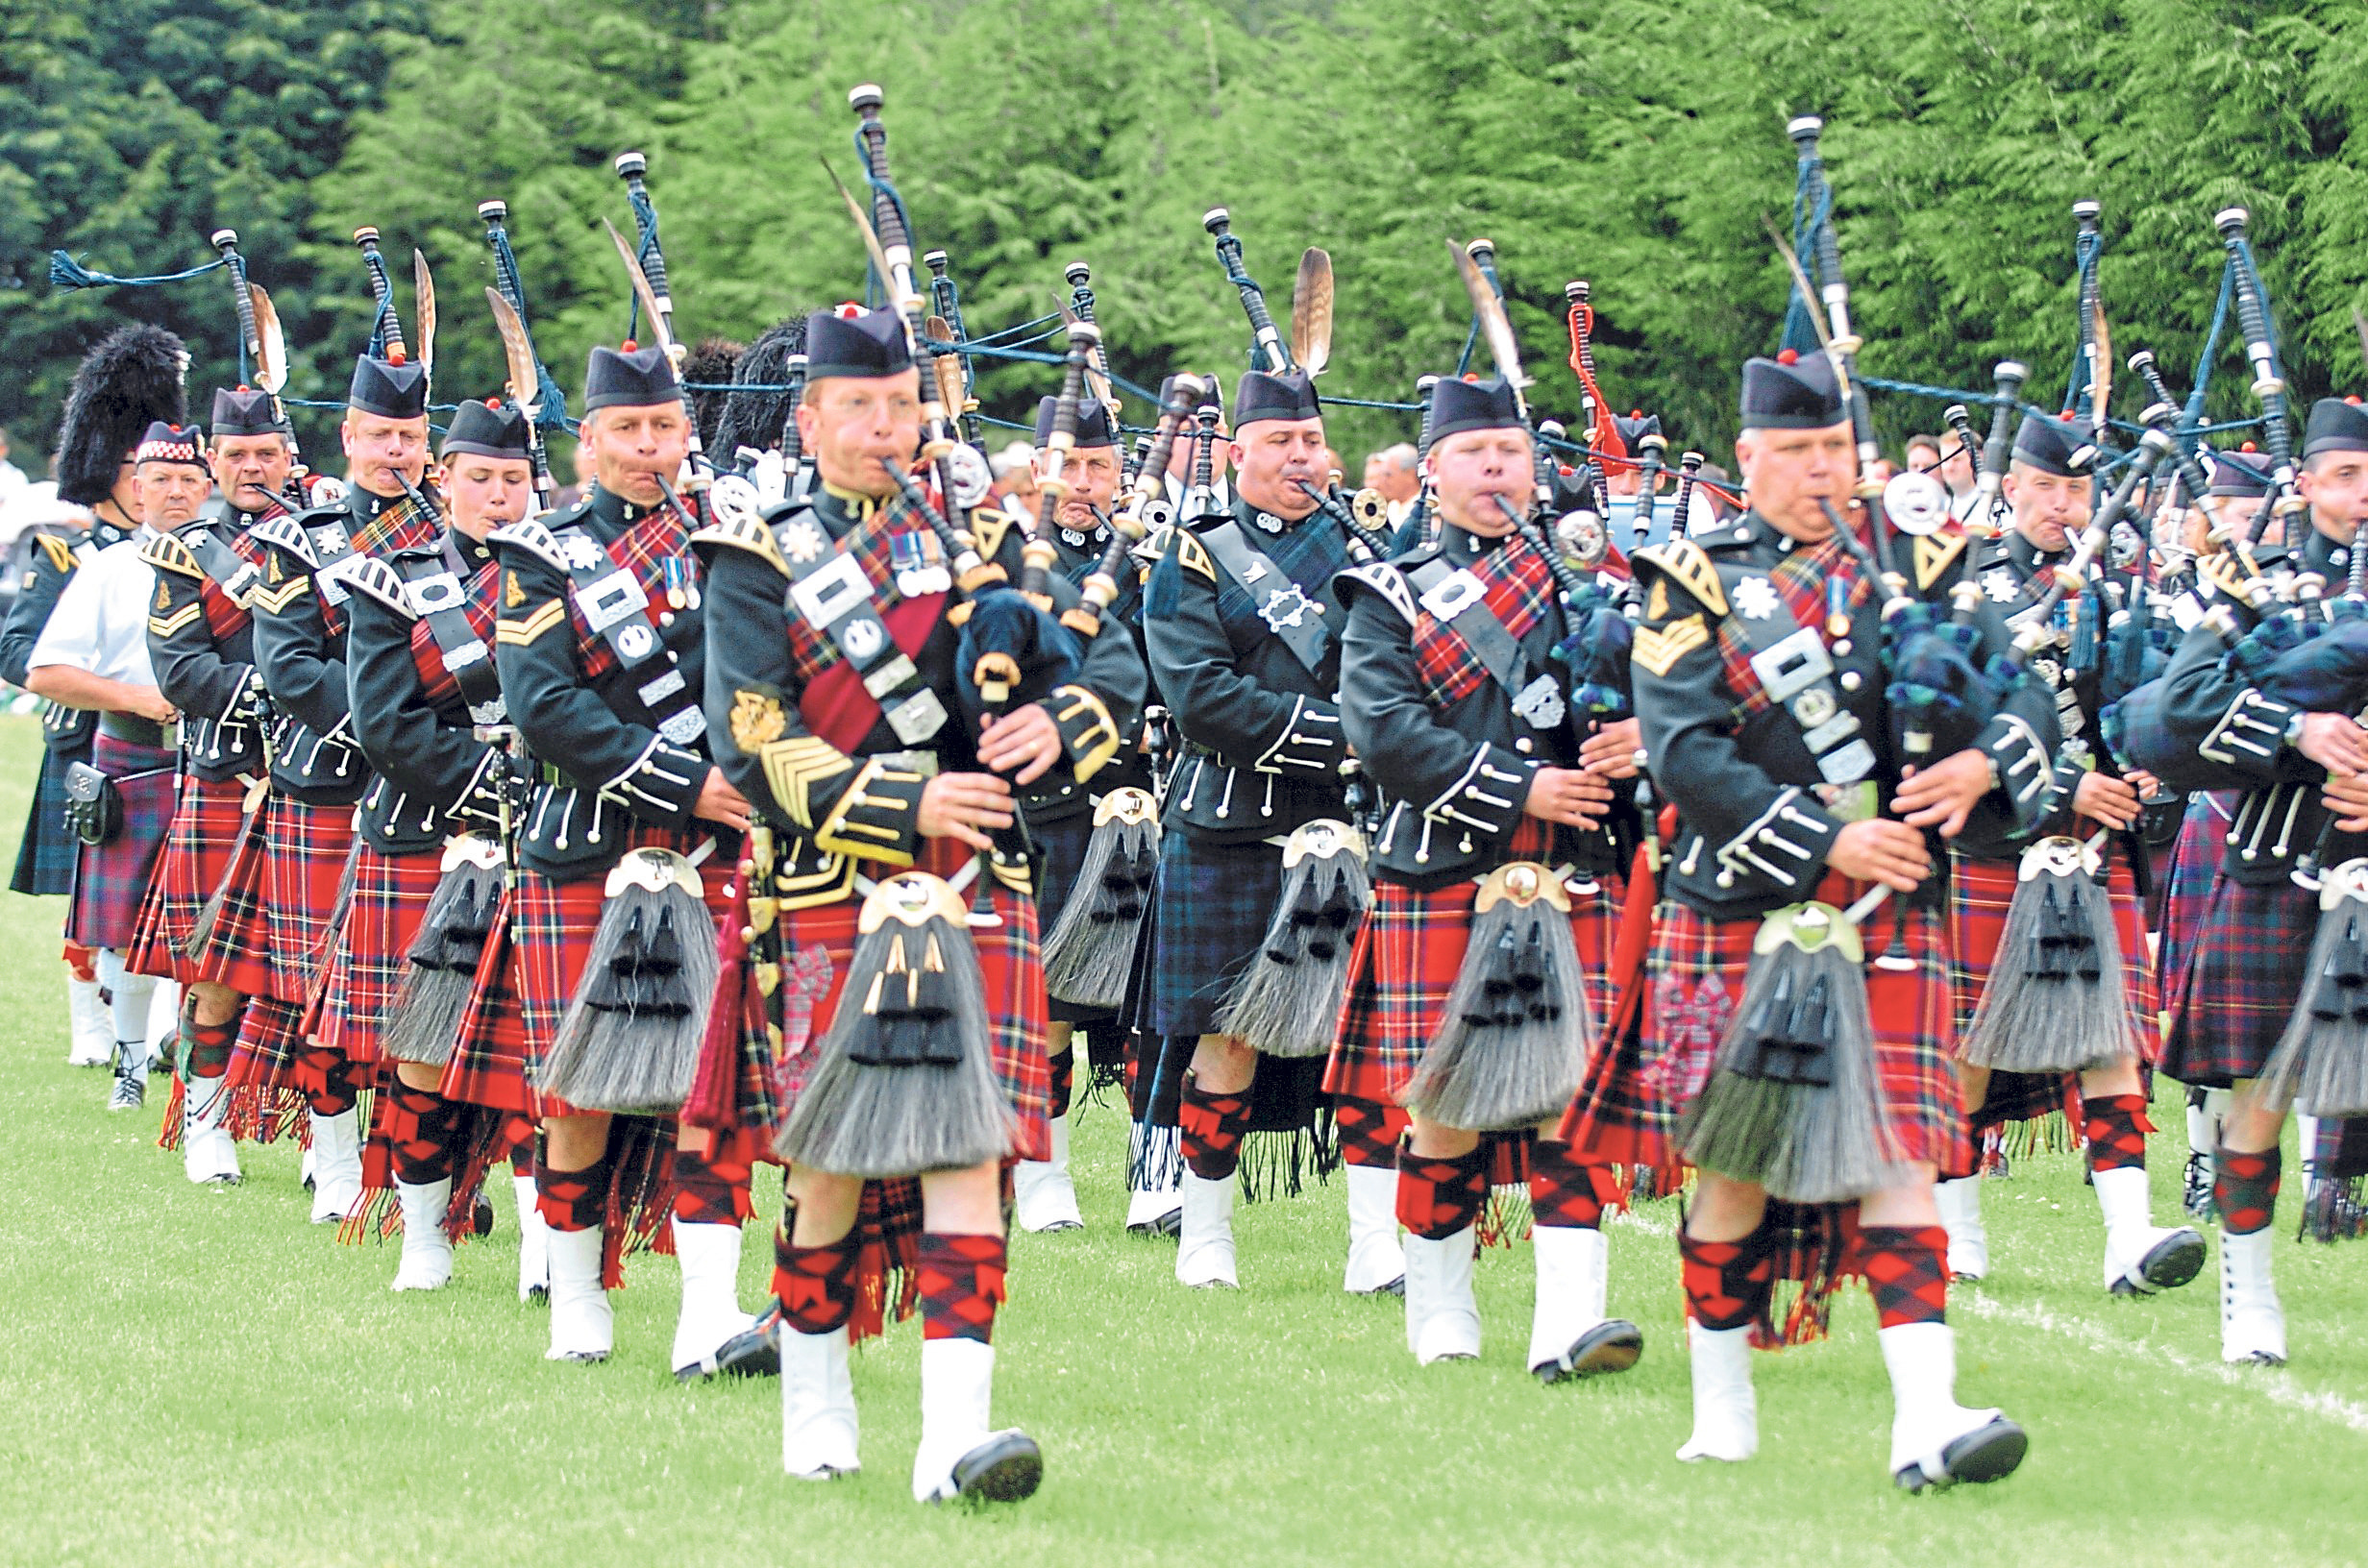 Pipers proudly parade into the park for the games